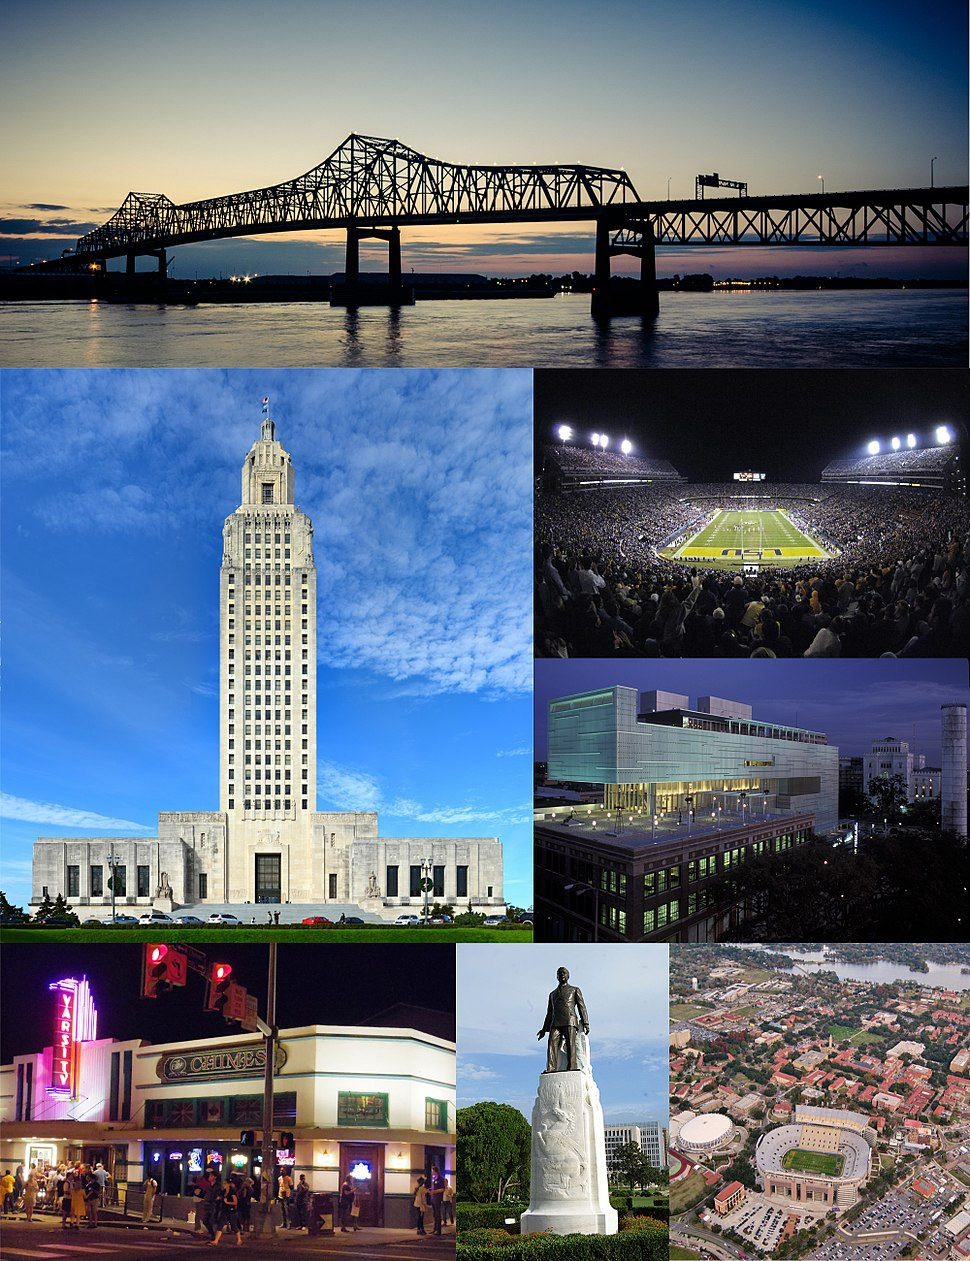 From top clockwise: the Horace Wilkinson Bridge spanning across the Mississippi River, Tiger Stadium during an LSU football game, the Shaw Center for the Arts on Lafayette Street, an aerial view of Louisiana State University, the Huey P. Long Memorial in the State Capitol Gardens, the Varsity Theatre near LSU, and the Louisiana State Capitol in downtown Baton Rouge.